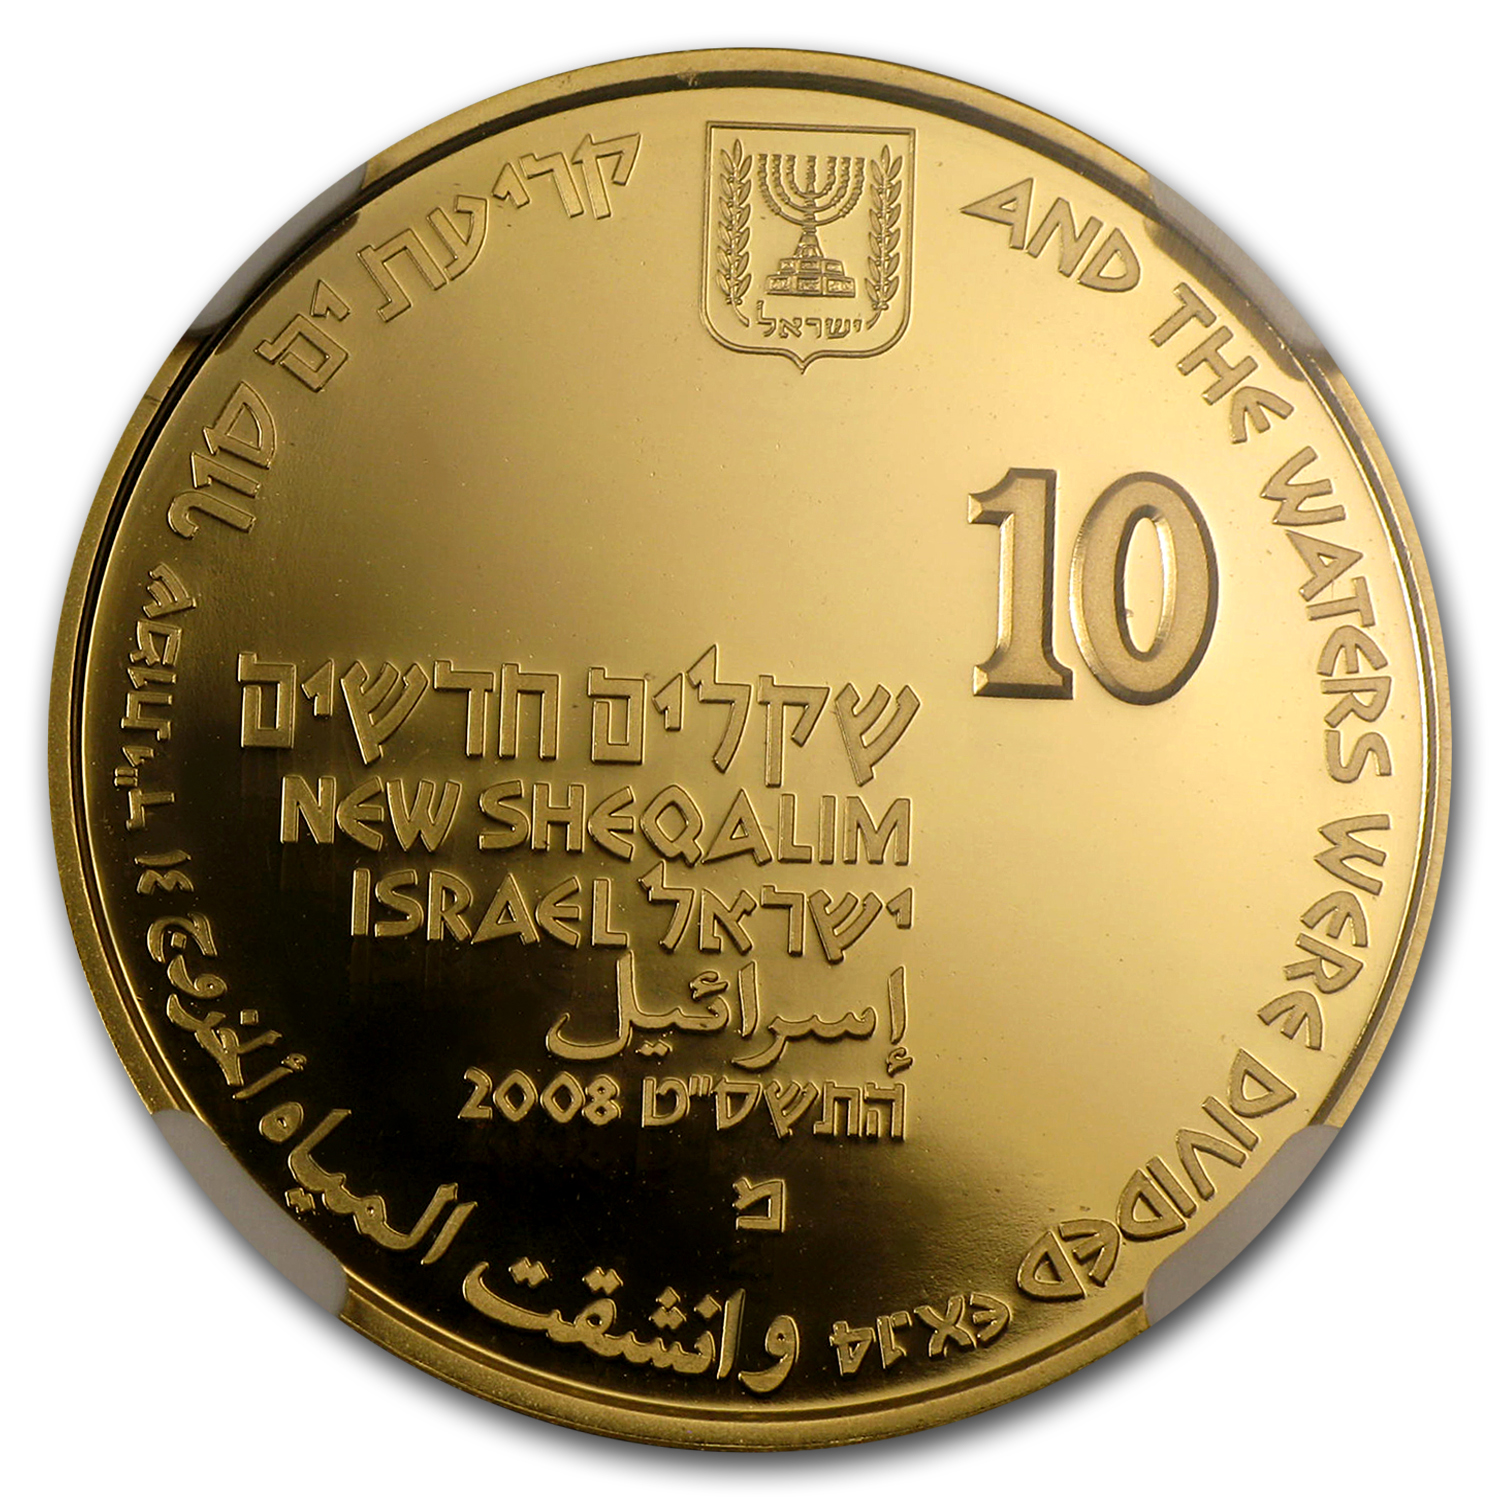 2008 Israel 1/2 oz Proof Gold Parting of the Sea PF-70 NGC